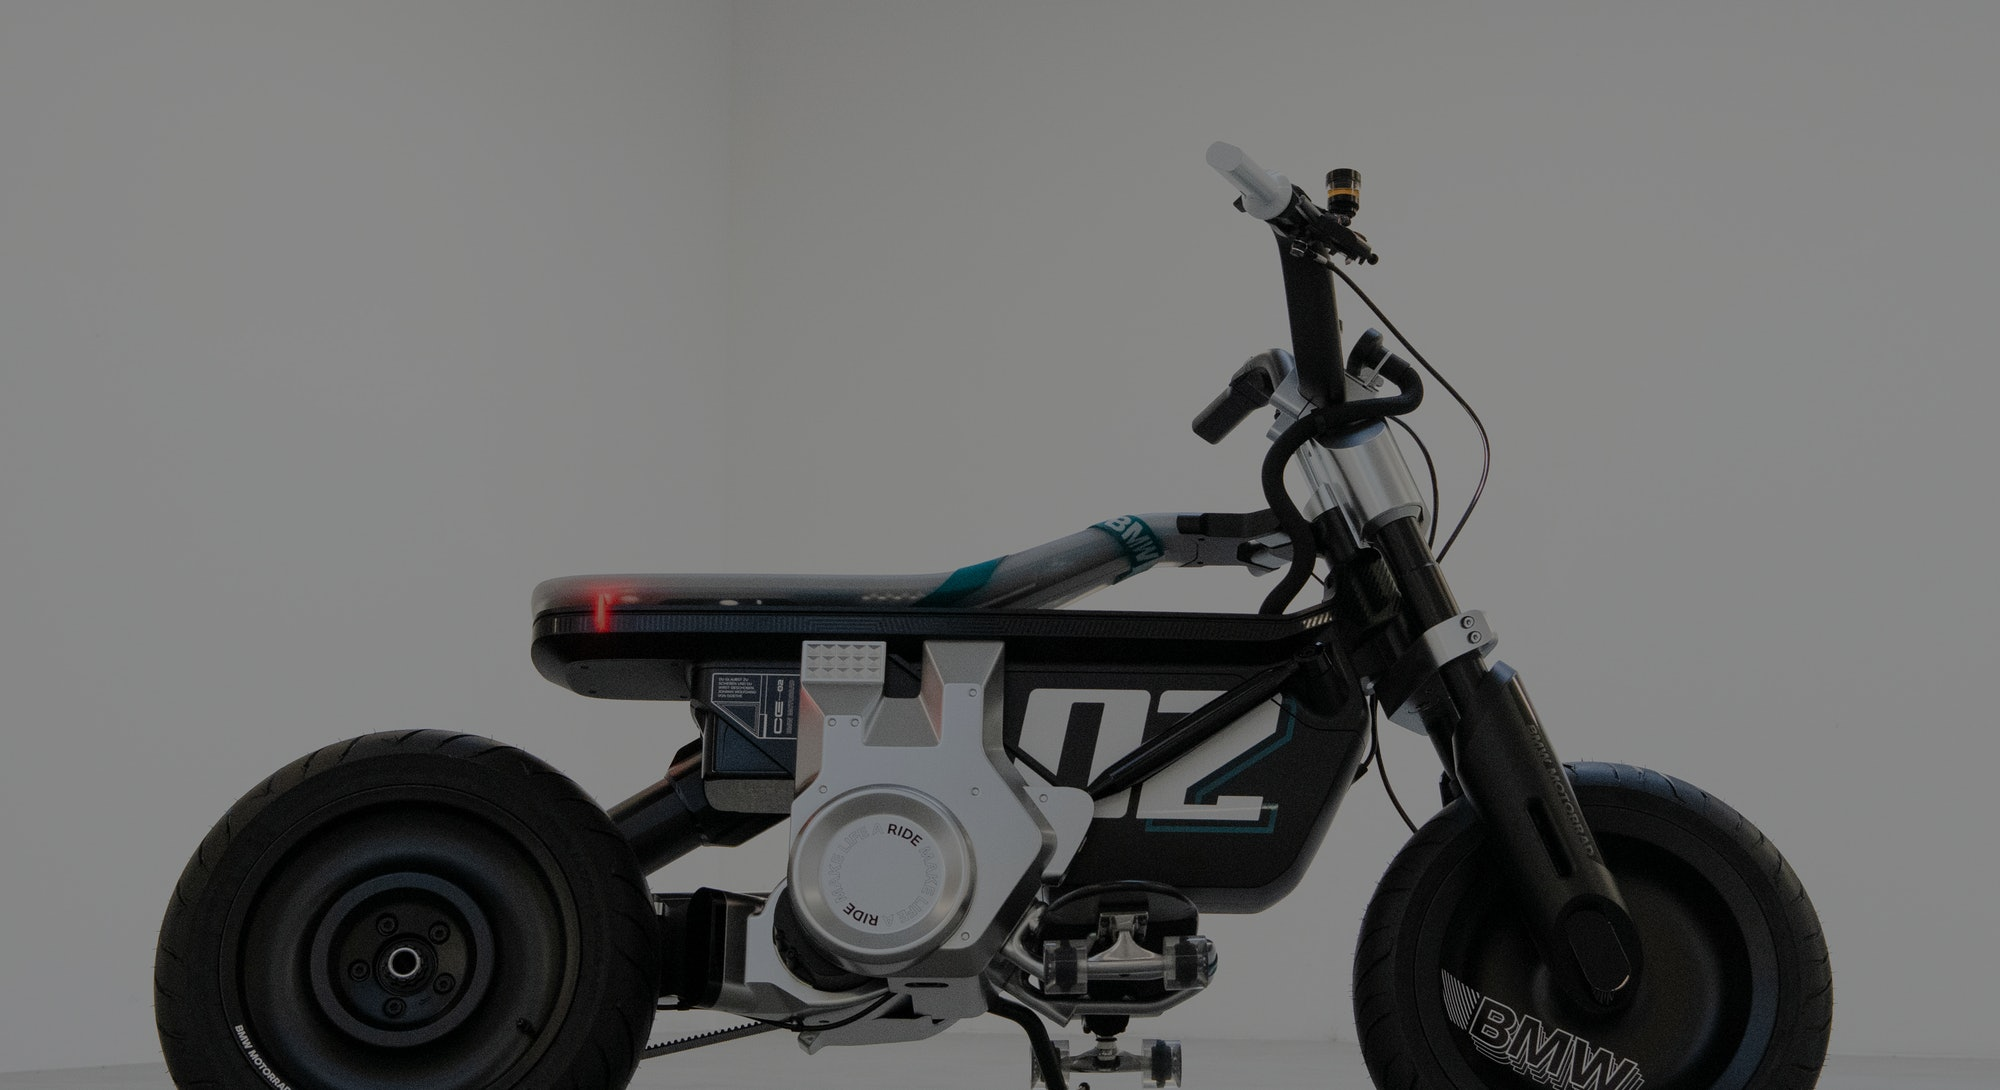 BMW electric motorbike/scooter concept CE 02. Electric vehicle. EV. EVs. Electric bike. E-bike. E-sc...